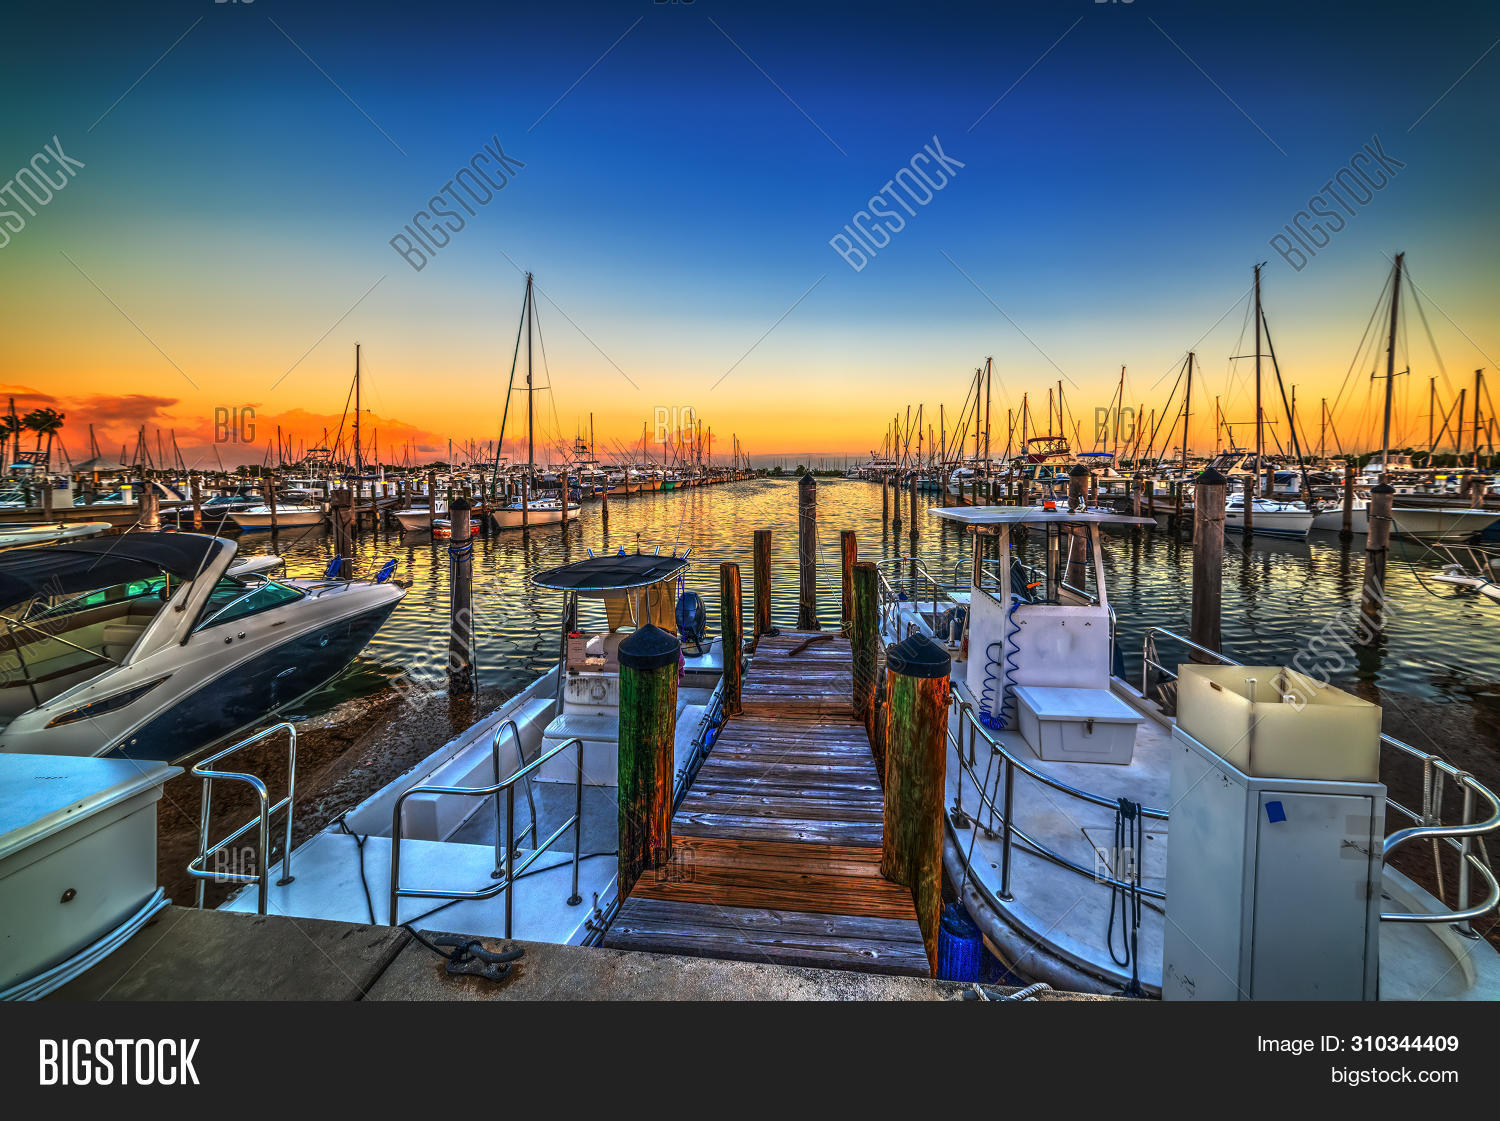 Boats In Coconut Grove Harbor At Sunset. Florida, Usa